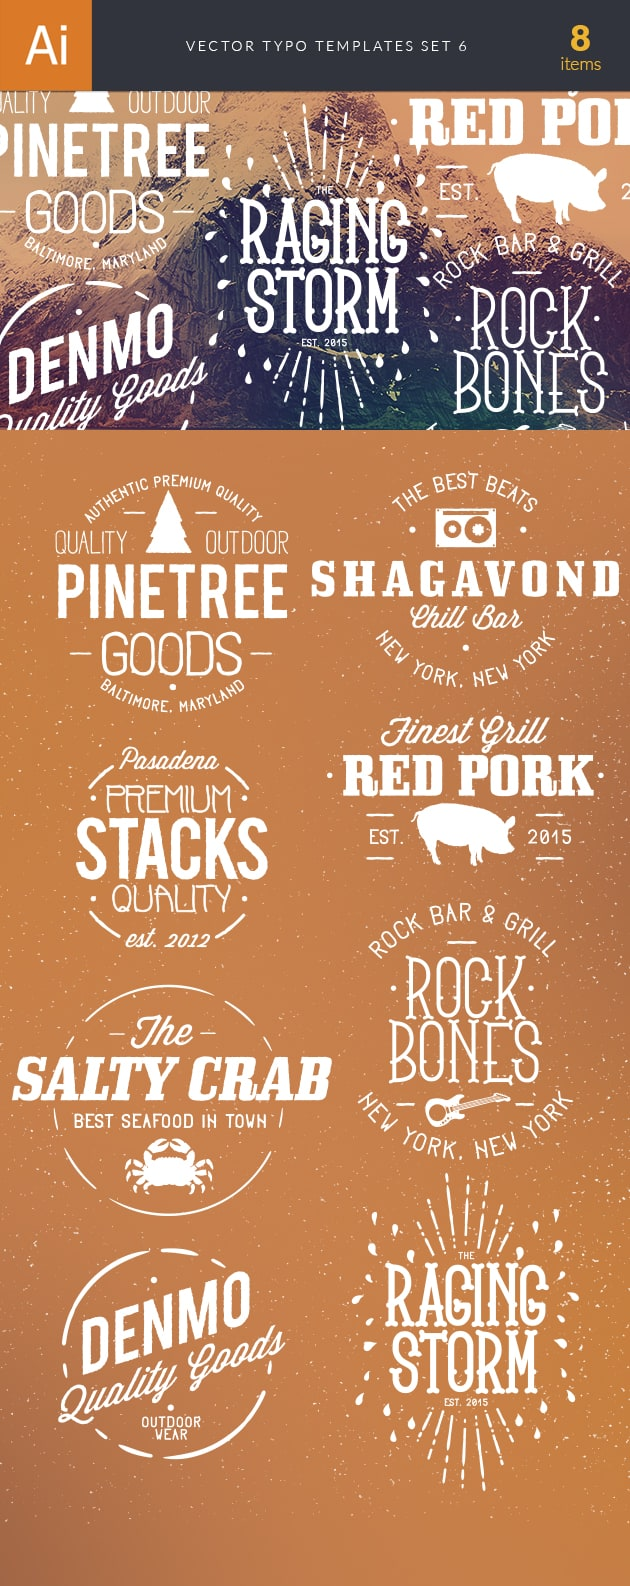 Vector Typography Templates Set 6 vector typography templates 6 preview large